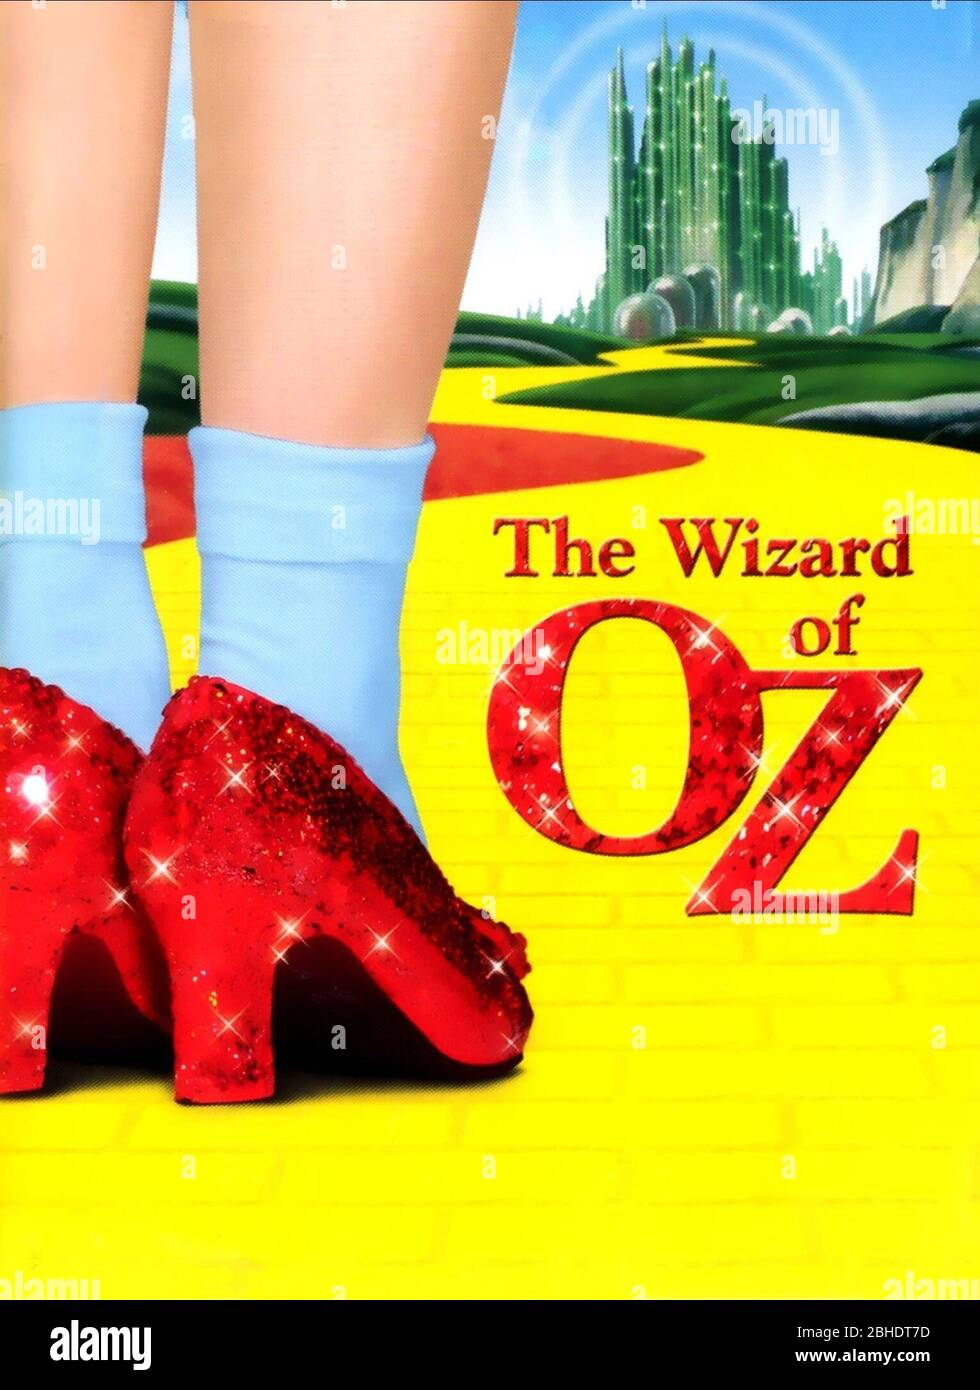 Wizard Of Oz Touch The Red Slipper Then The Tornado : wizard, touch, slipper, tornado, Wizard, Emerald, Resolution, Stock, Photography, Images, Alamy